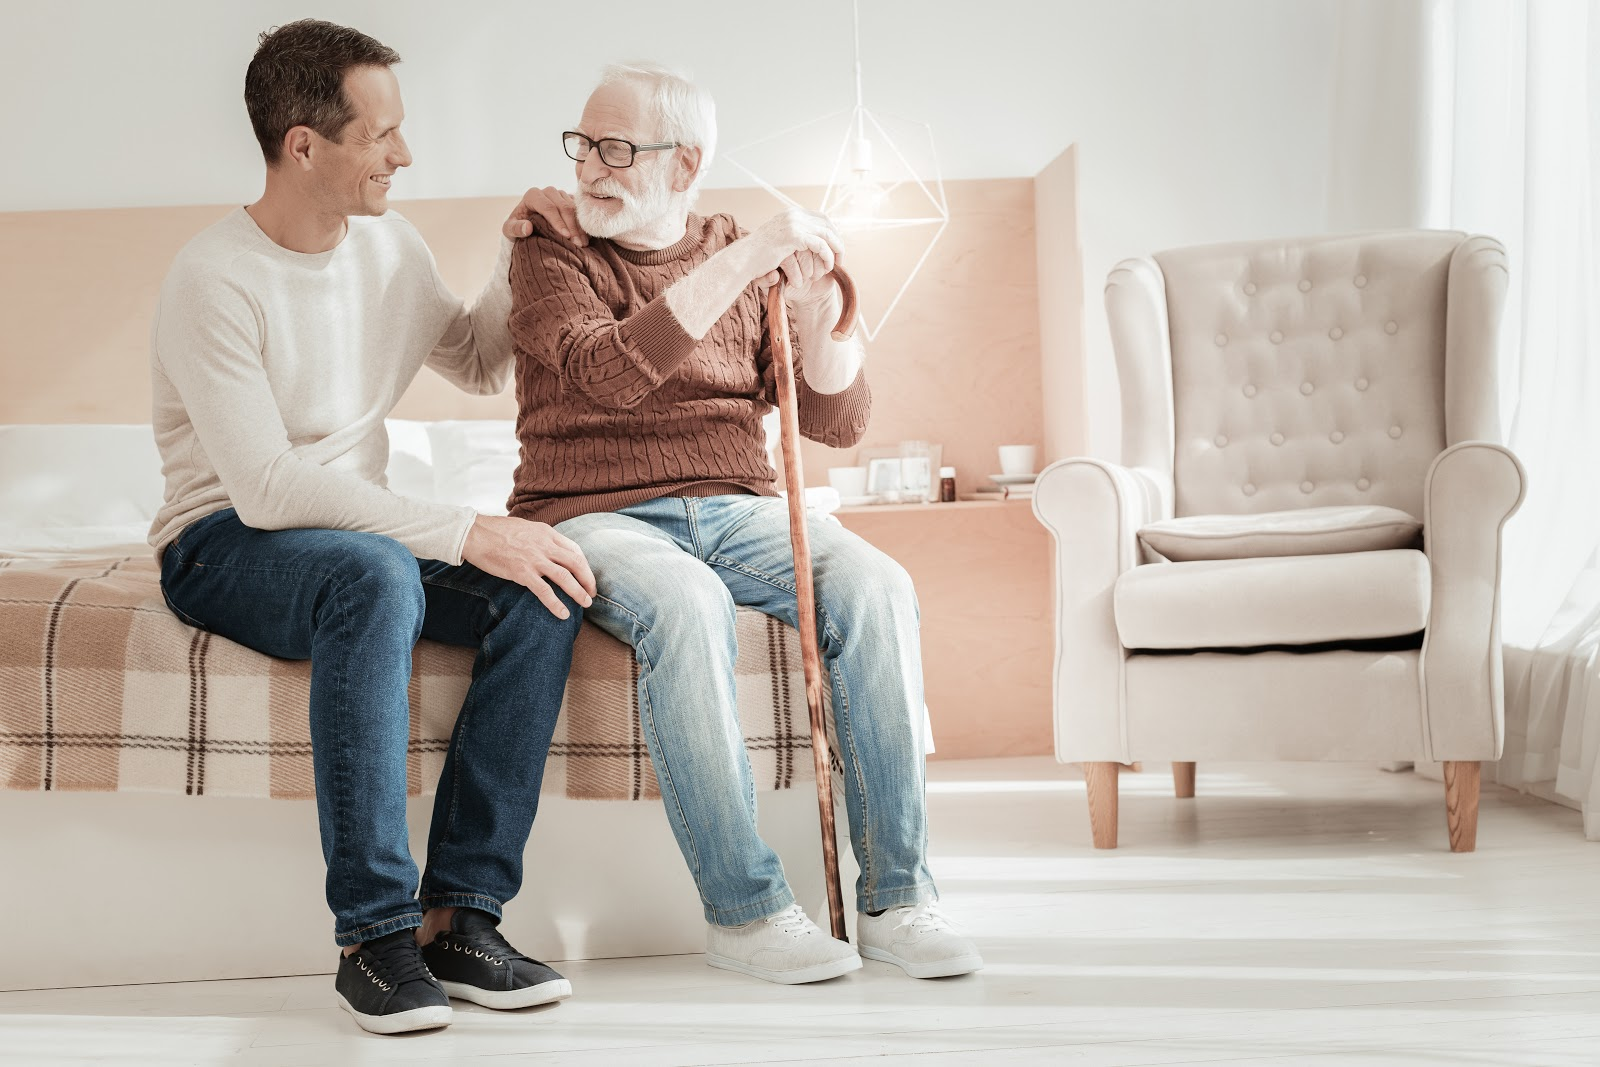 A man and his elderly father sitting and smiling together